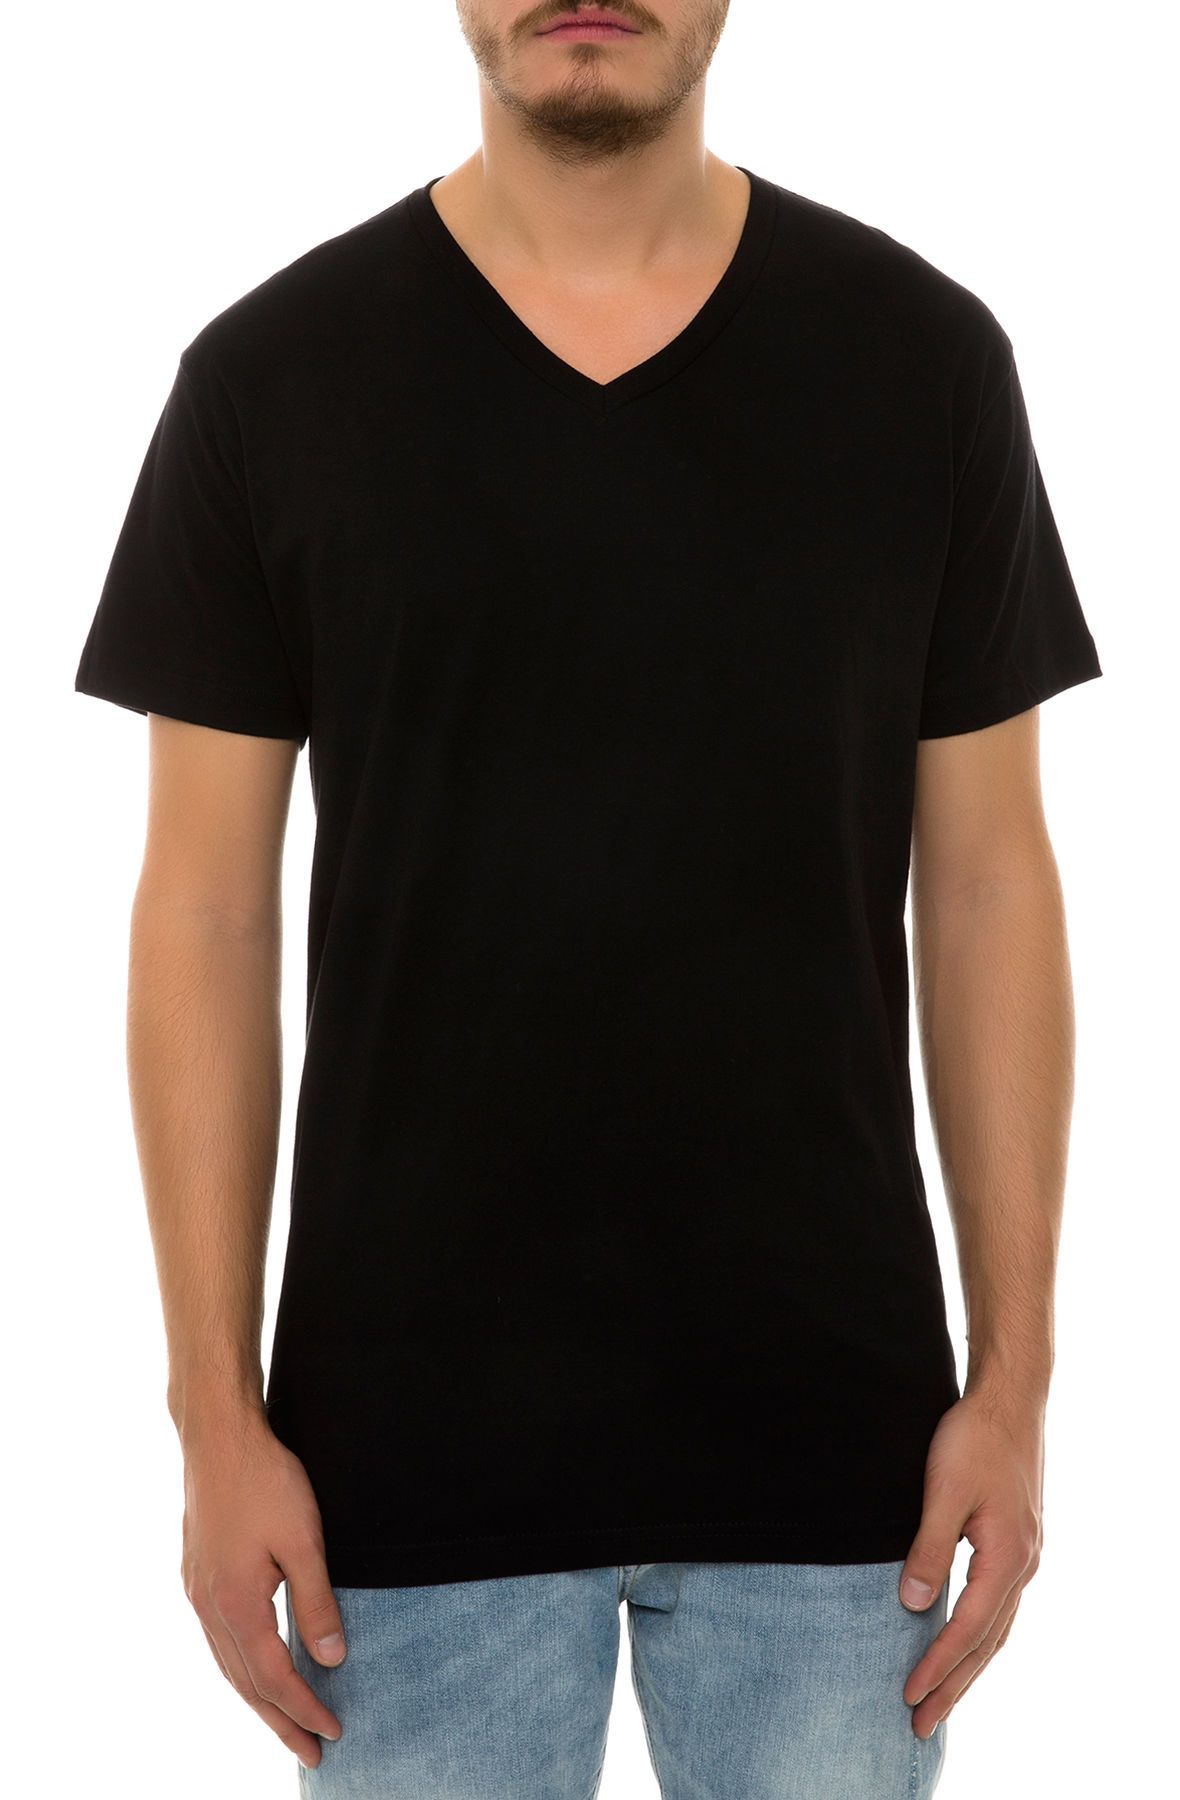 the basic vneck tee 3pack in 3 colors